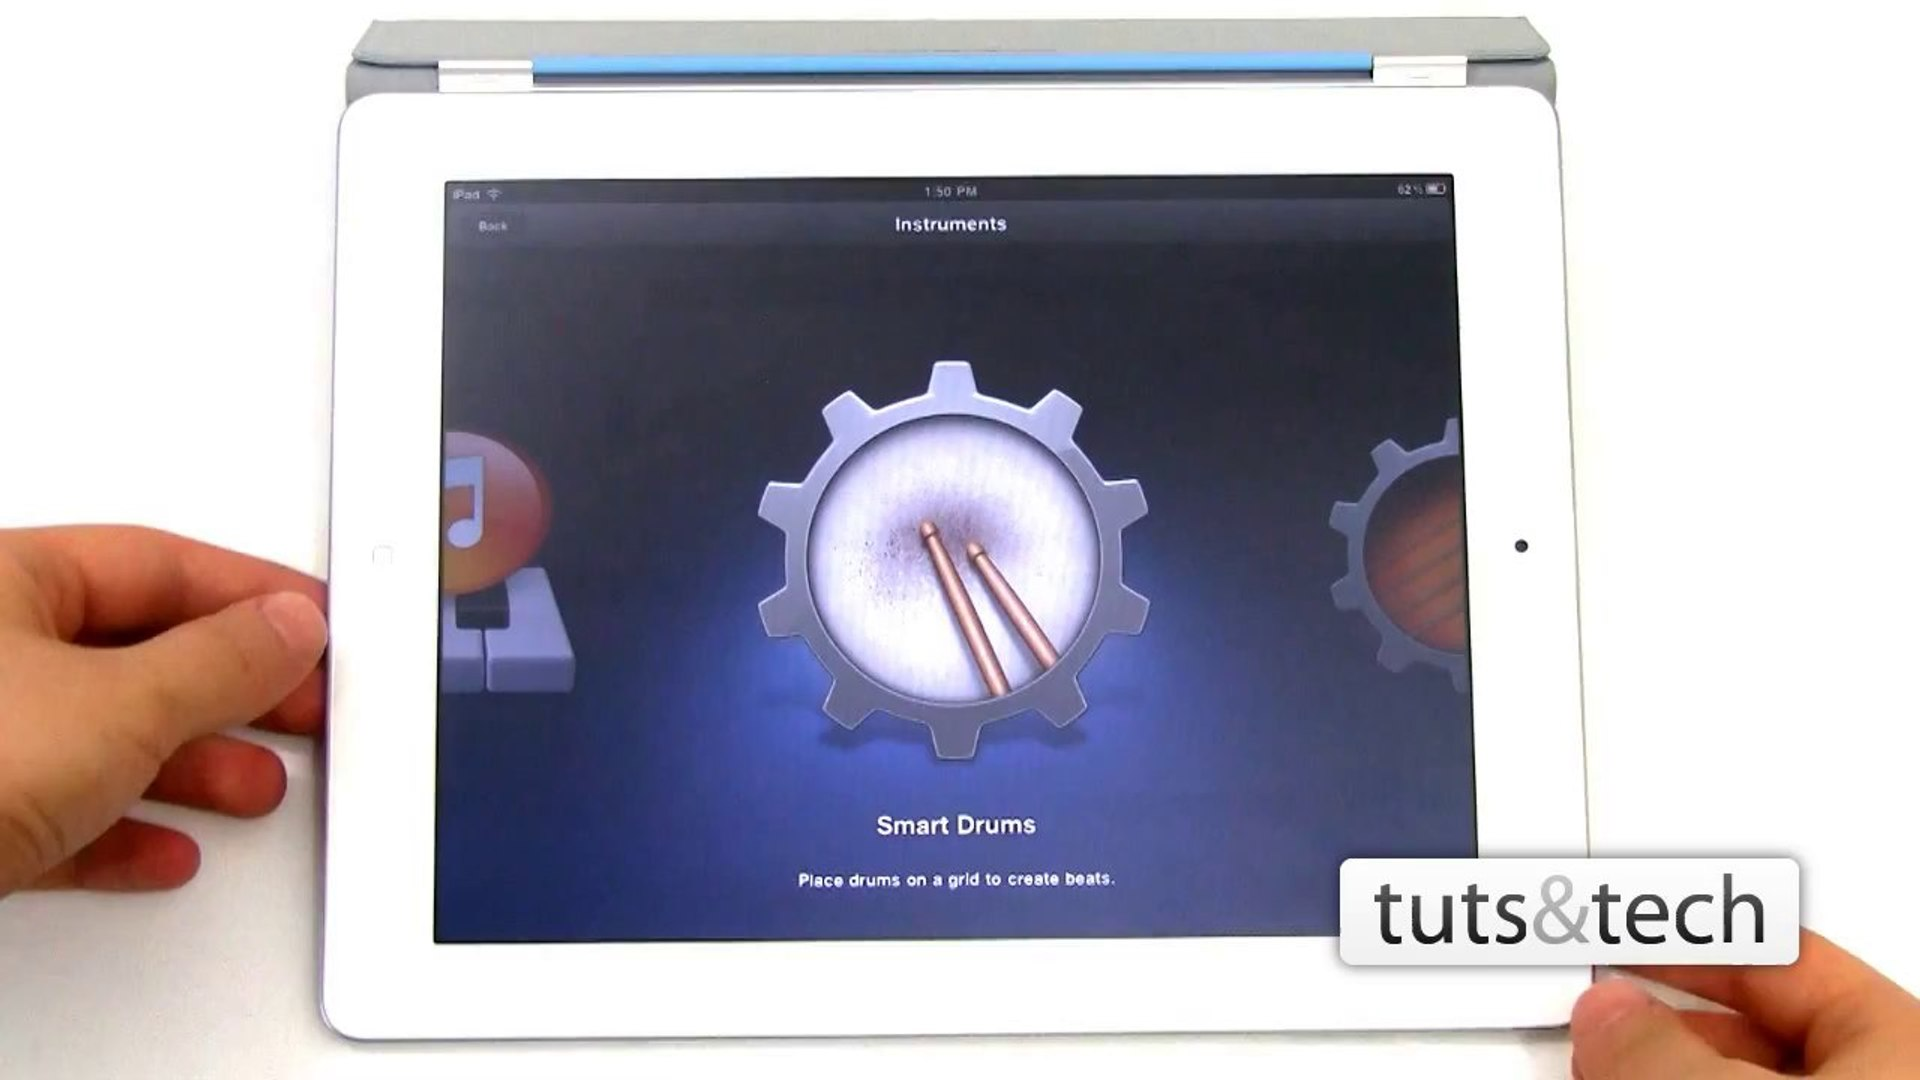 iPad: Taking Screenshots - Quick Tip